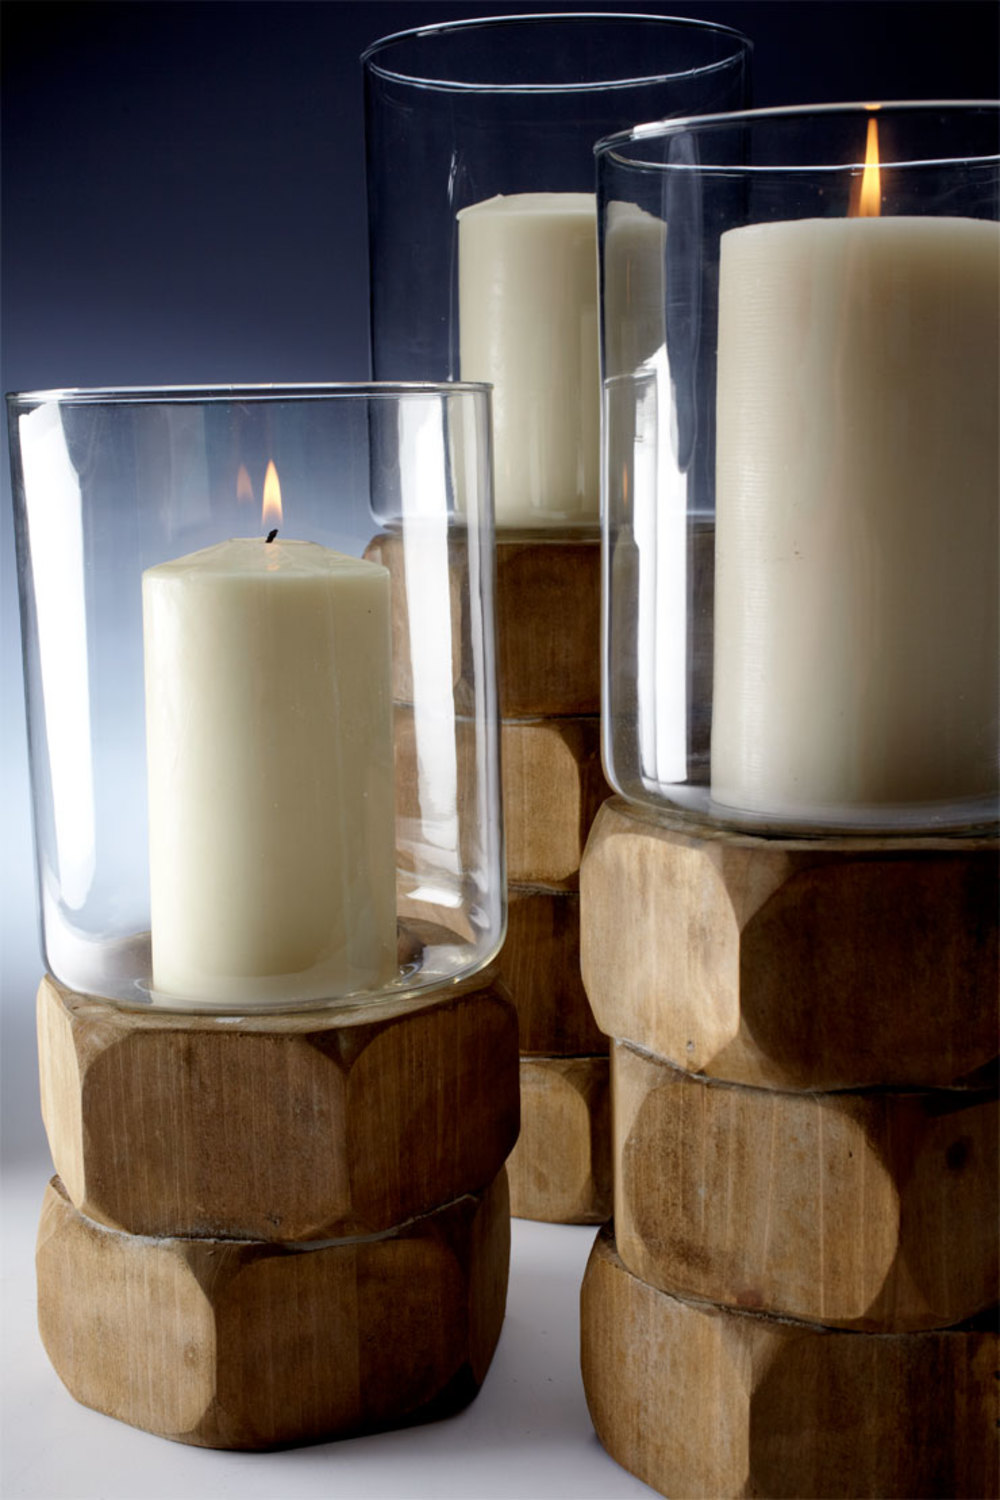 Cyan Designs - Small Hex Nut Candleholder